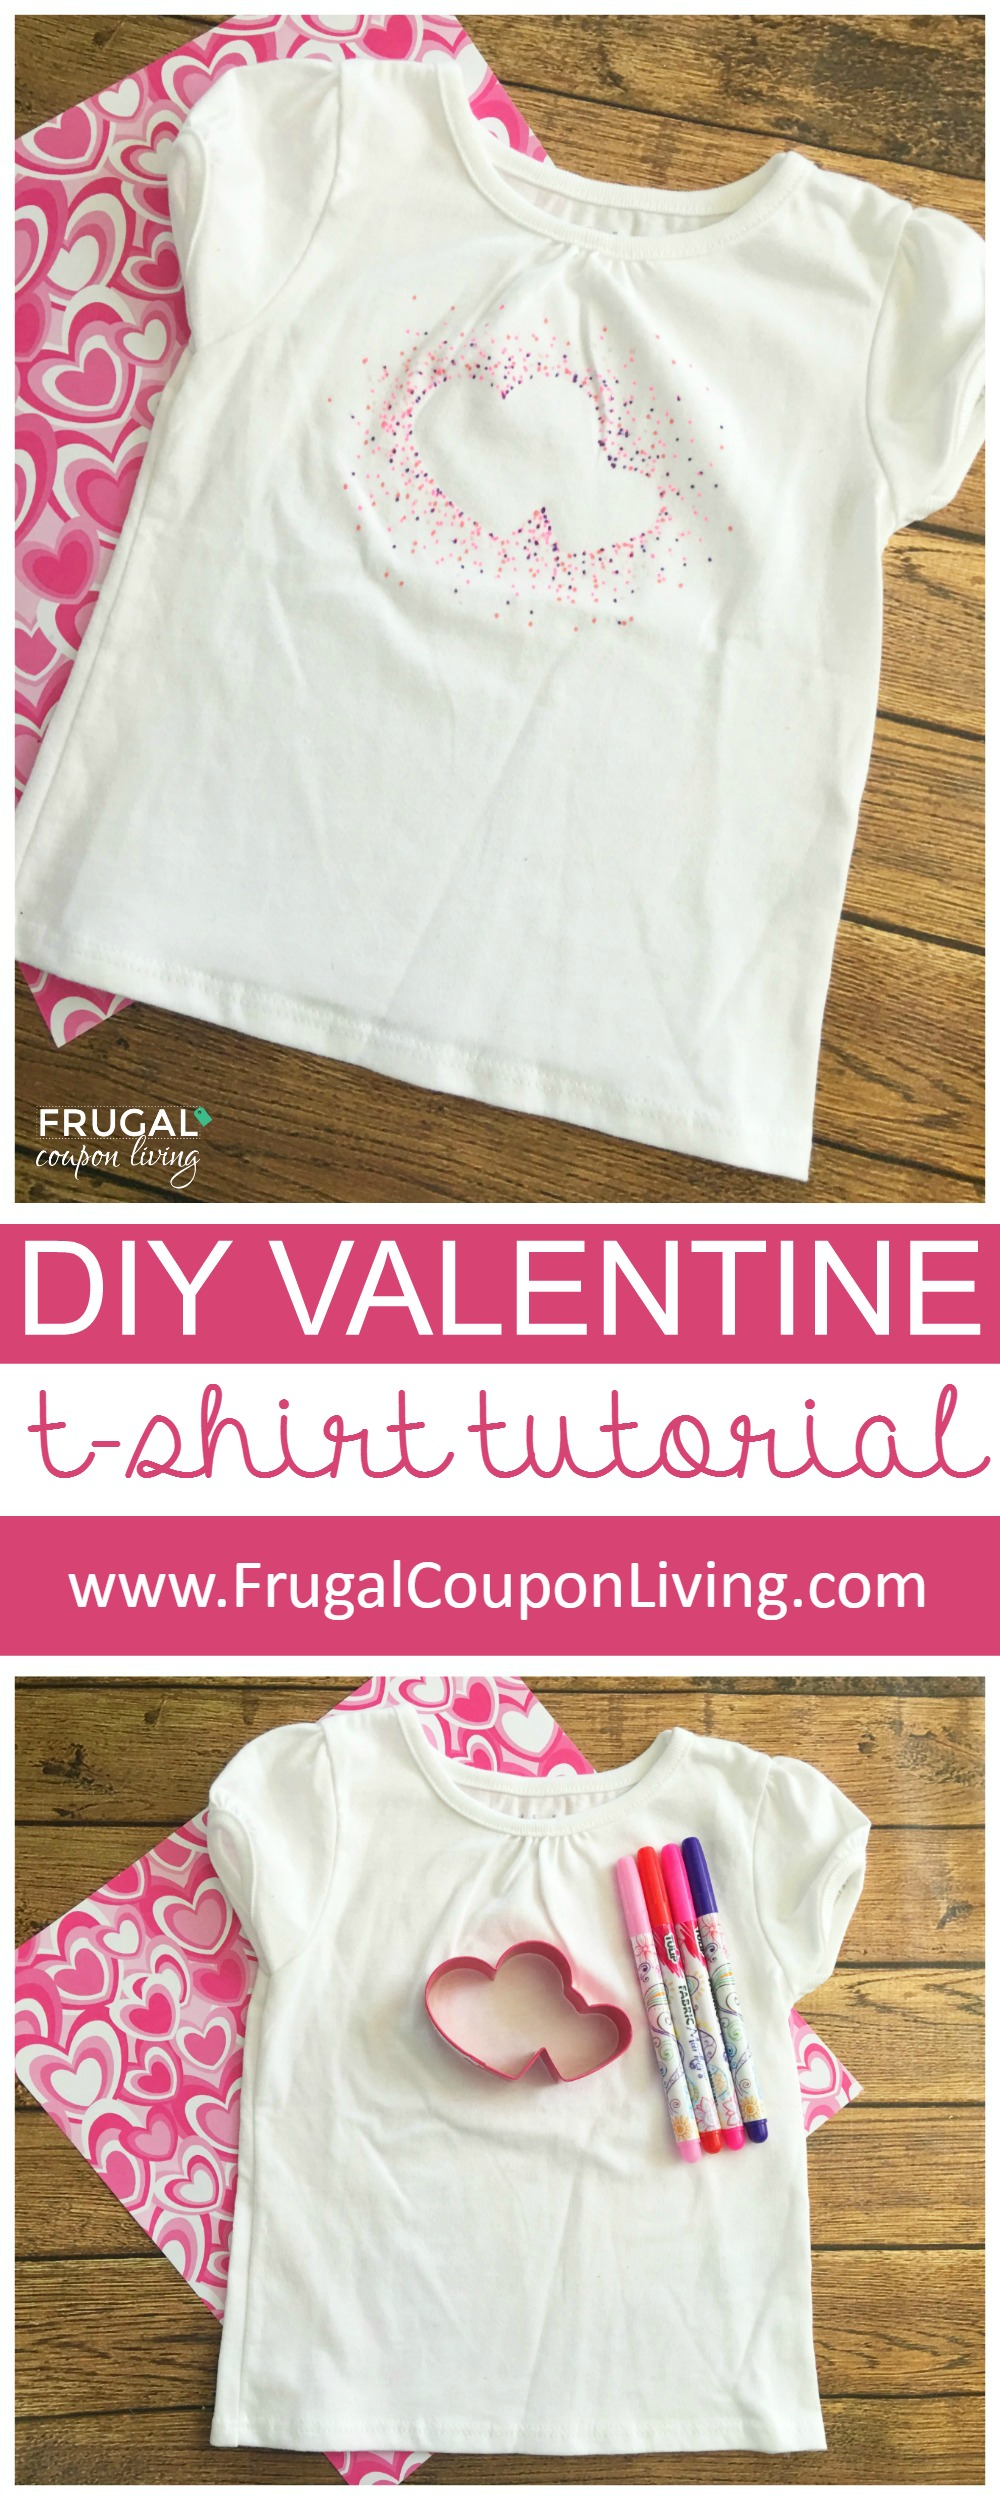 DIY-Valentine-Shirt-Collage-frugal-coupon-living